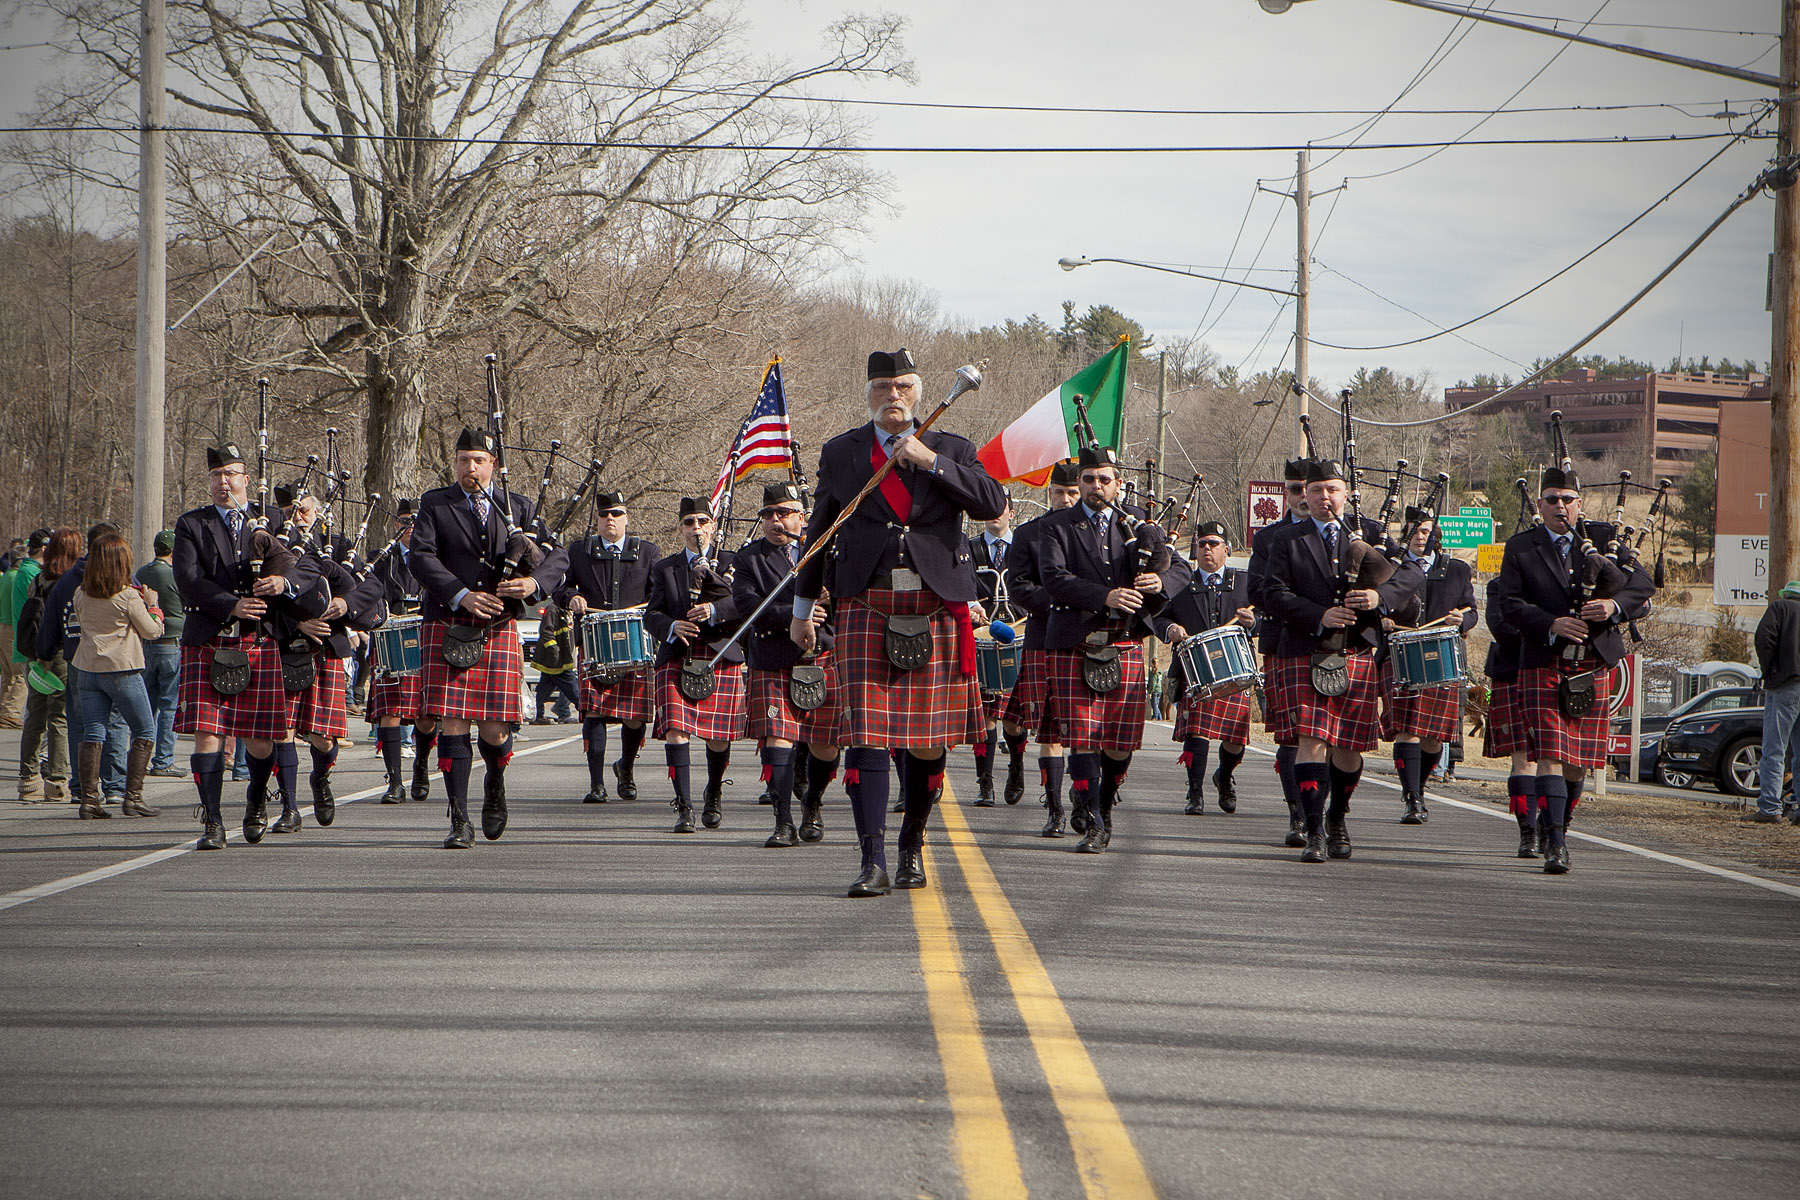 2019 Rock Hill St. Patrick's Day Parade